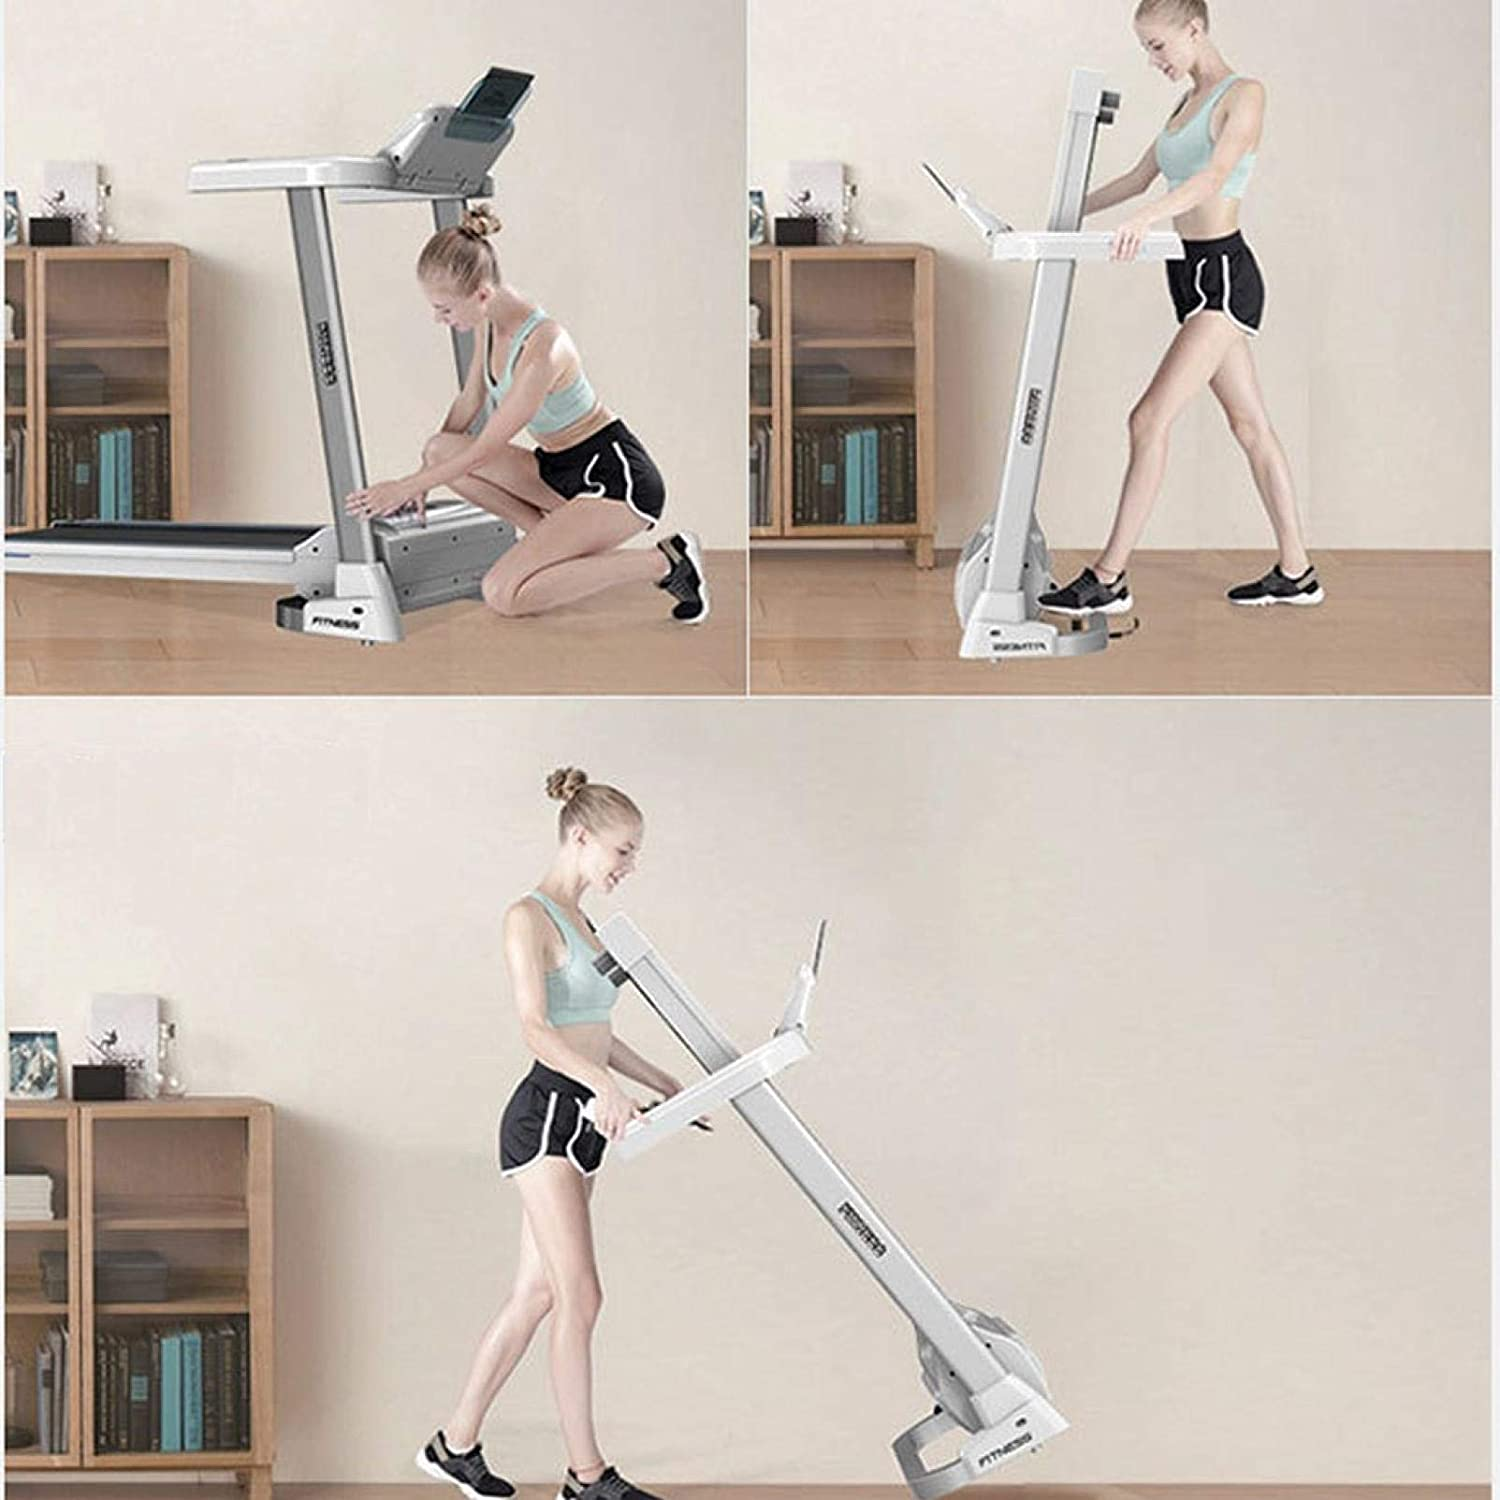 【USA in Stock 】 Treadmills for Home,2.0HP Folding Electric LCD Display Motorized Running Treadmill with Shock Absorption and Speakers Bluetoot,Running Machine for Home Gym